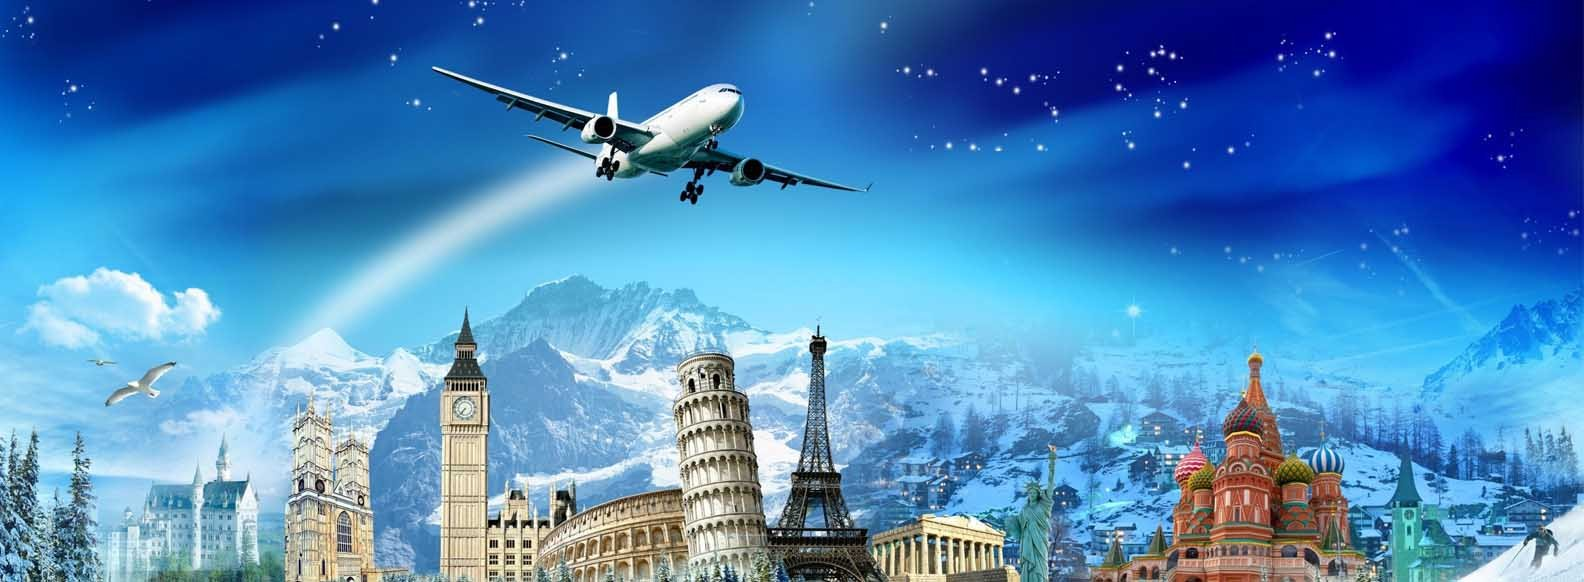 visa_guidancesfasf